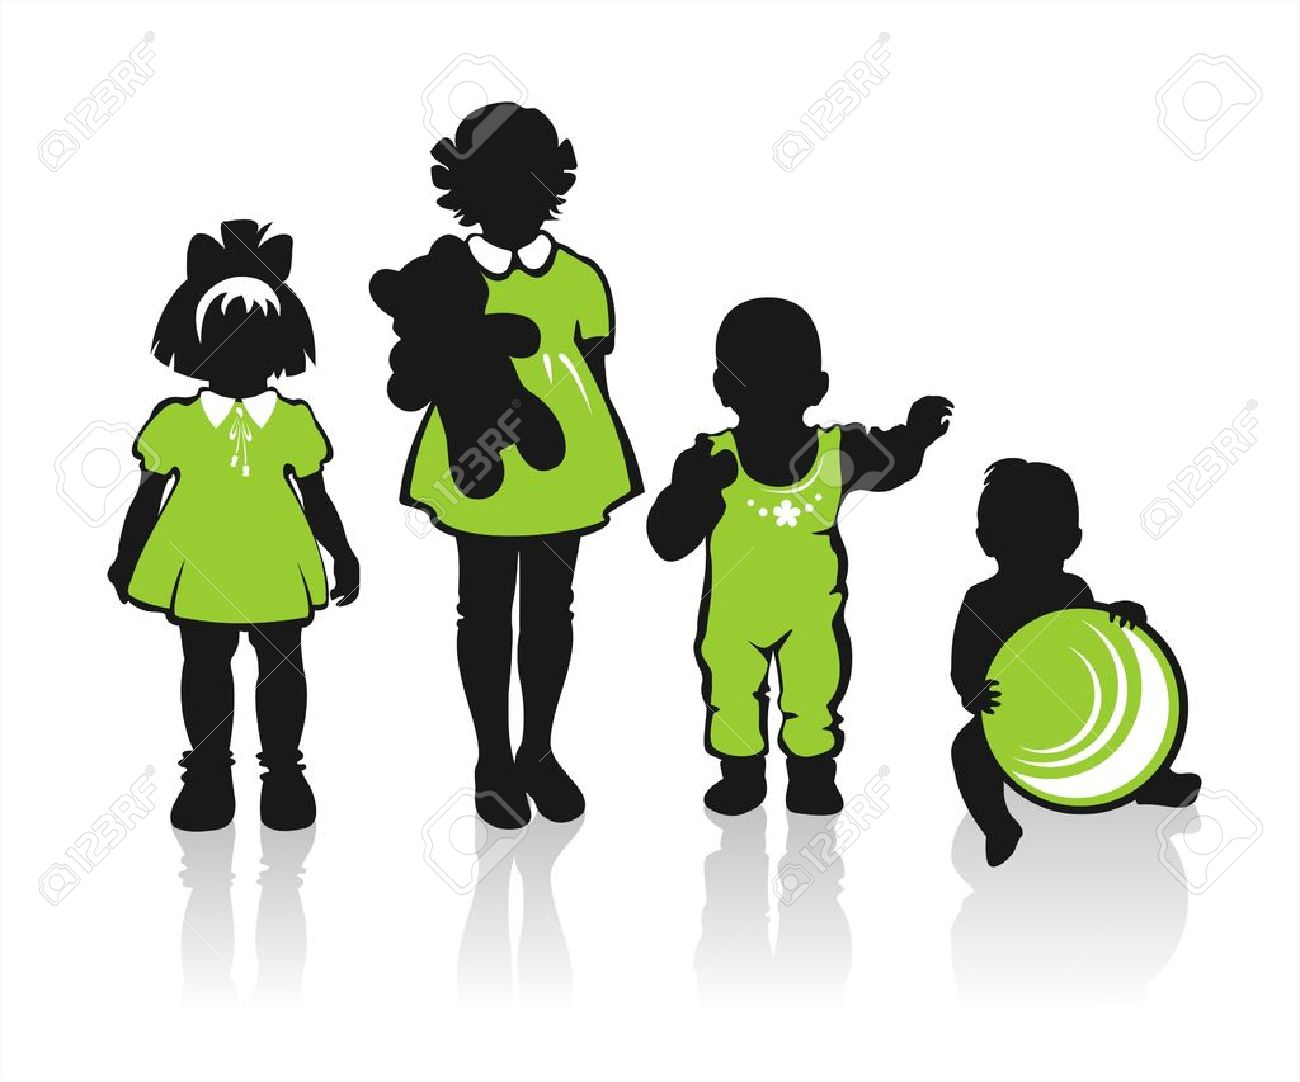 Black Children's Silhouettes On A White Background. Royalty Free.